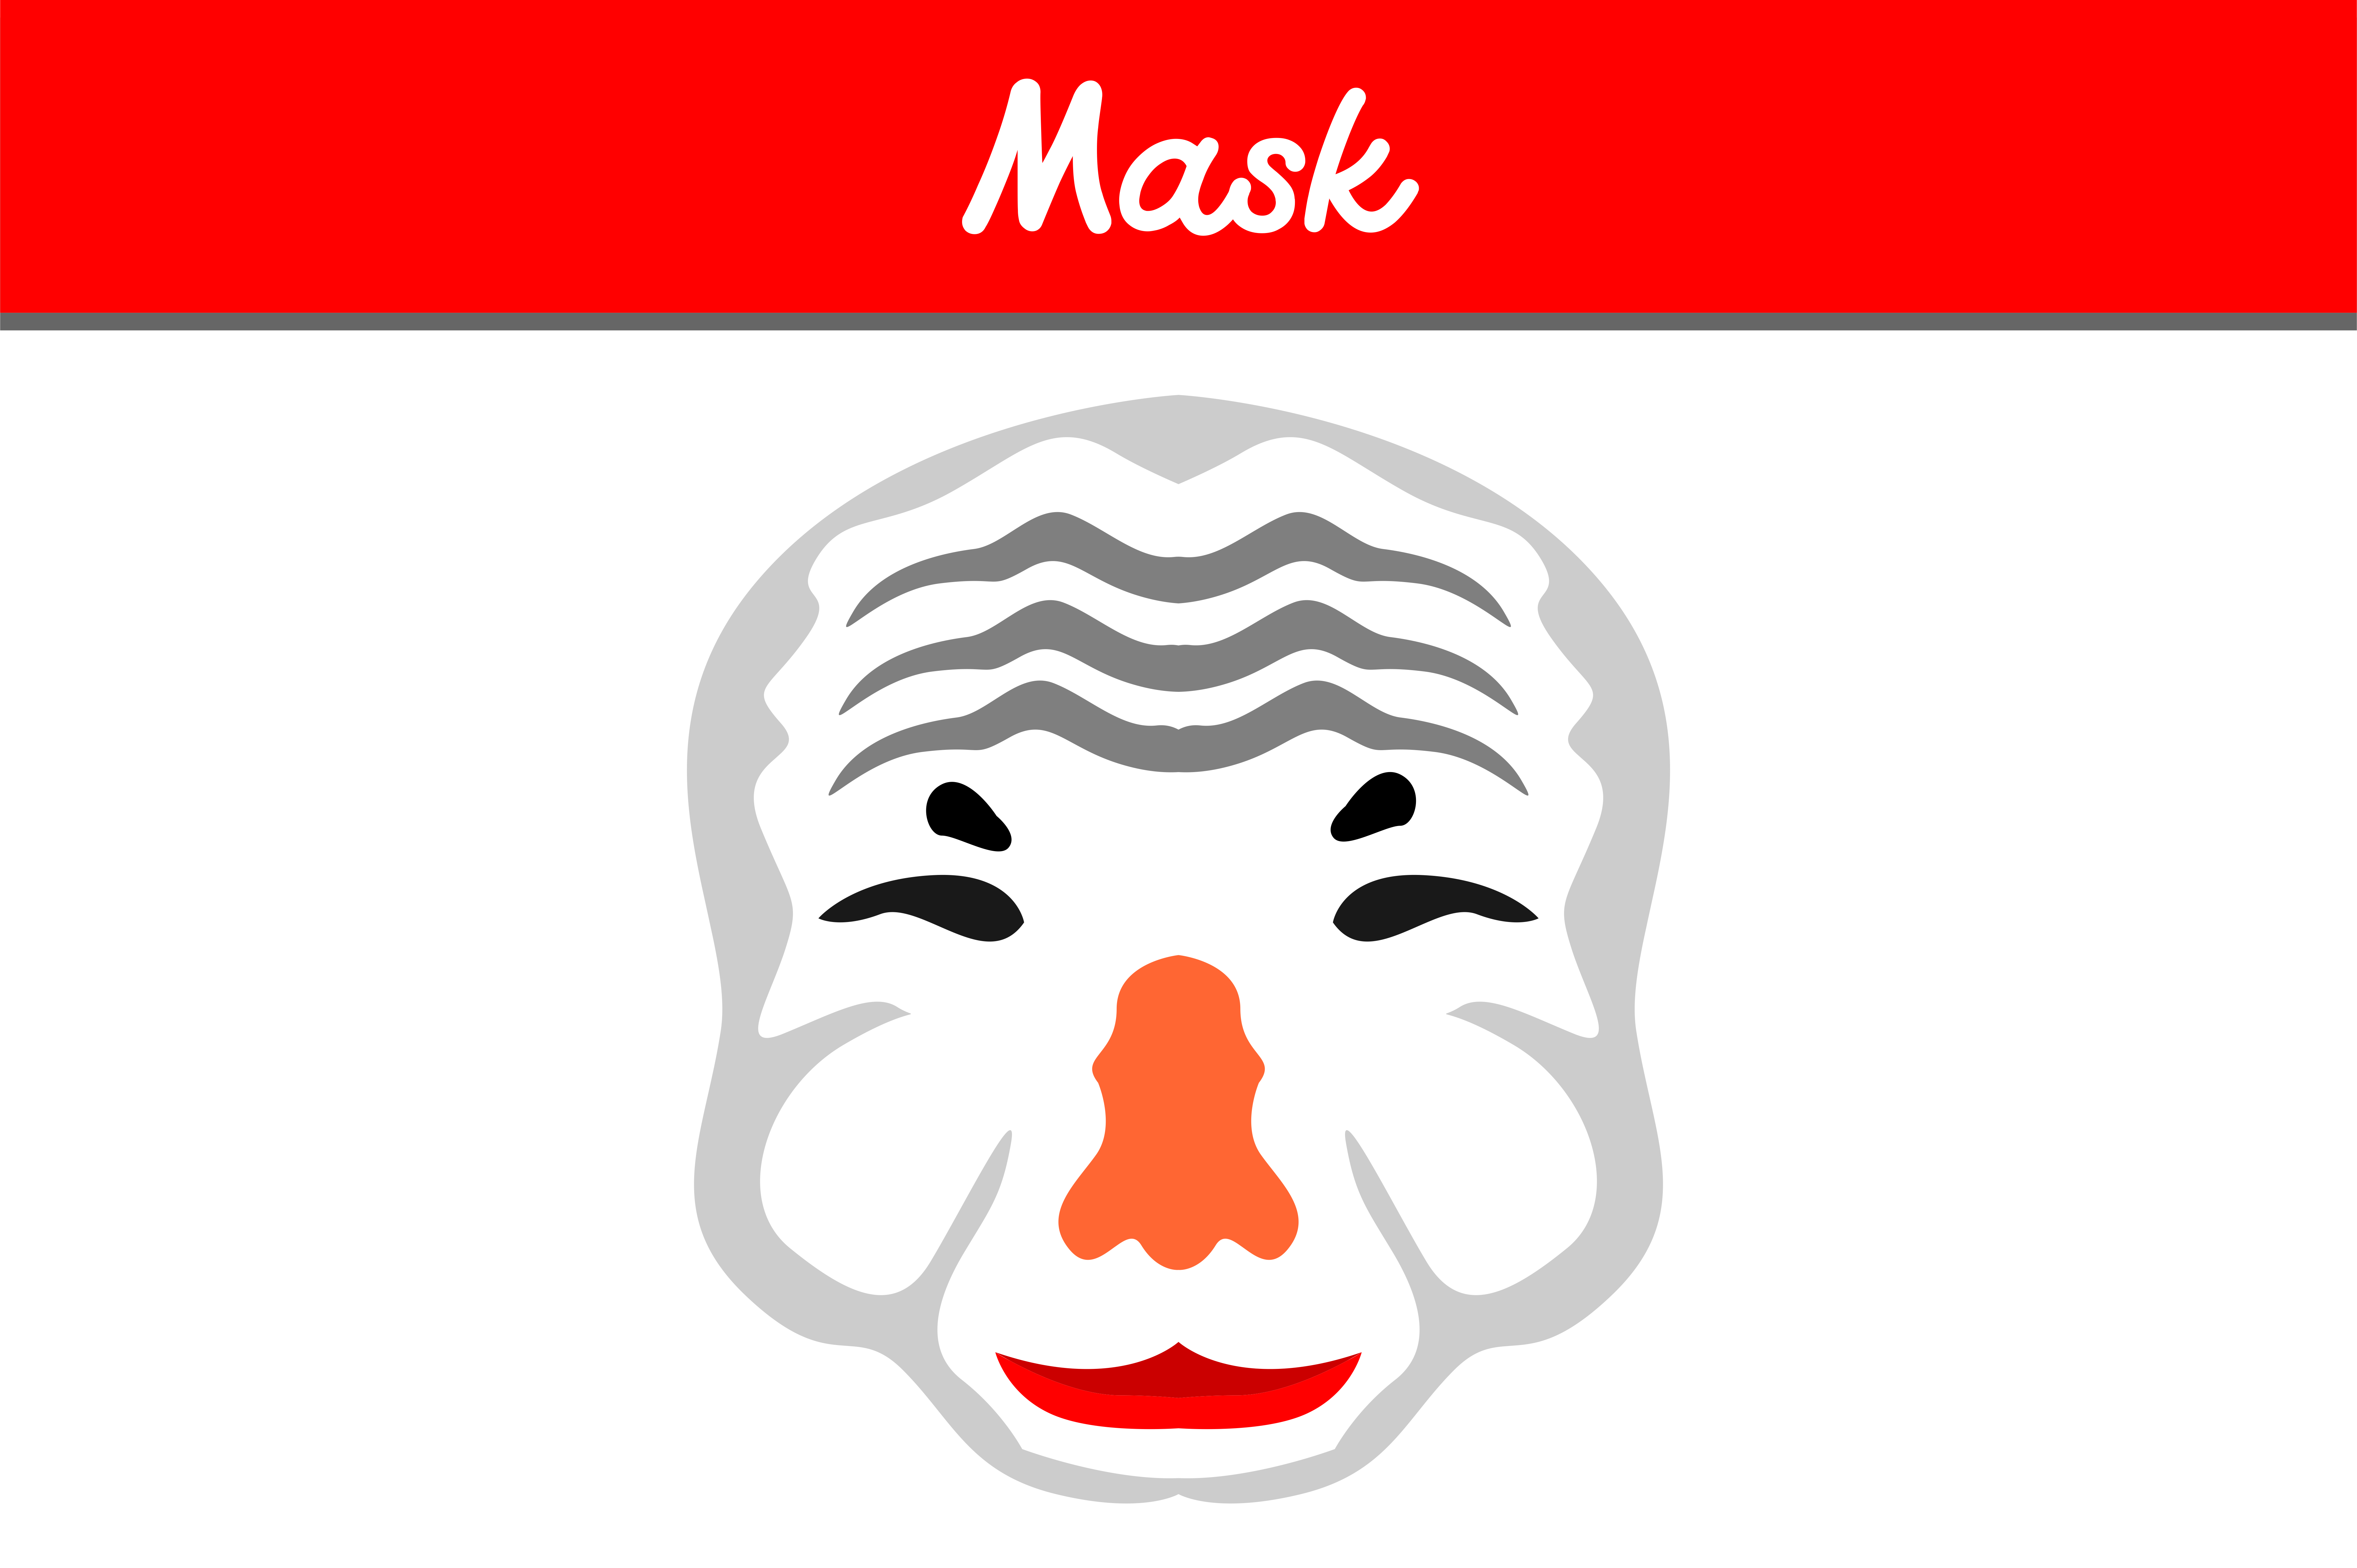 Download Free Old Mask Graphic By Arief Sapta Adjie Creative Fabrica for Cricut Explore, Silhouette and other cutting machines.